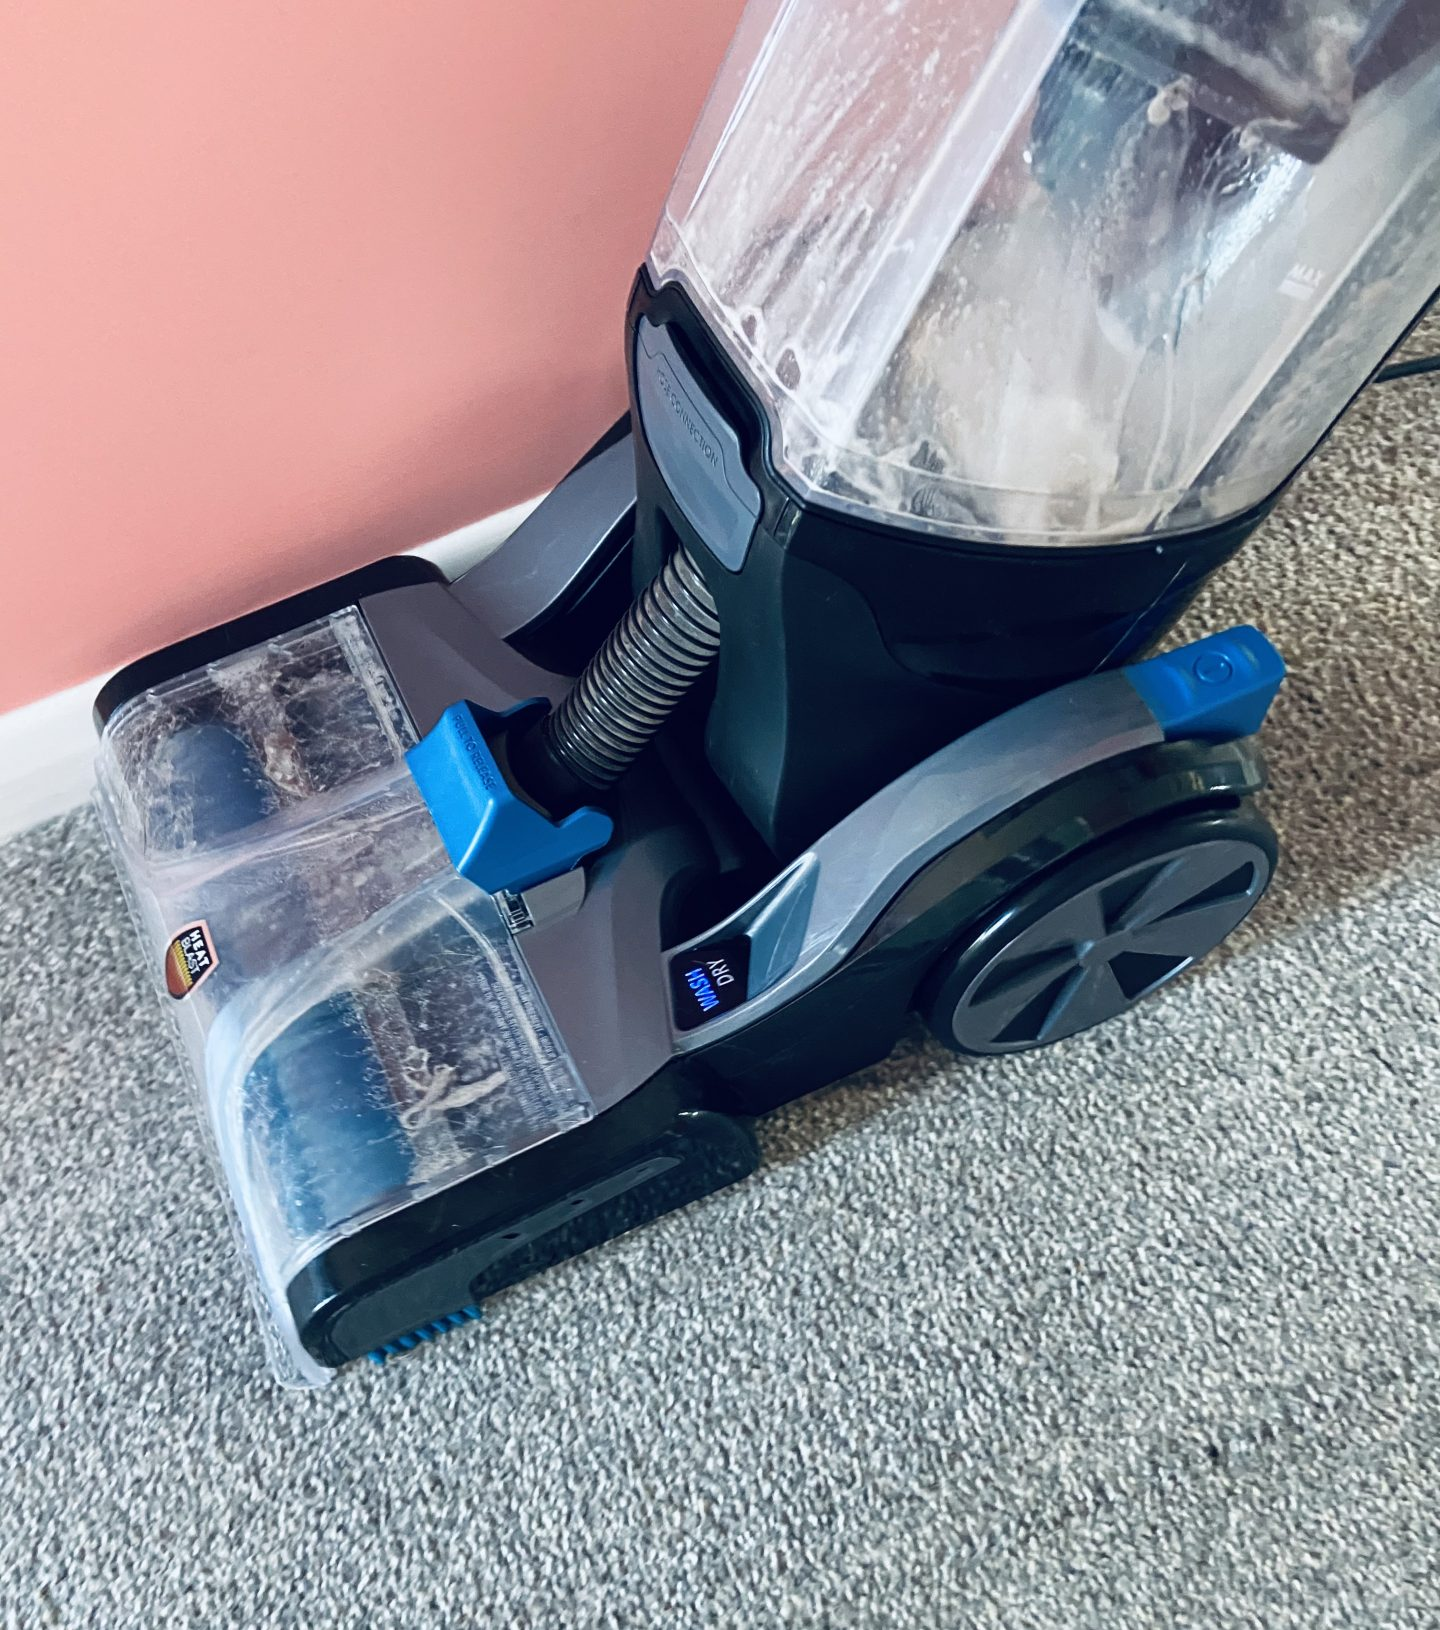 Vax carpet cleaner review